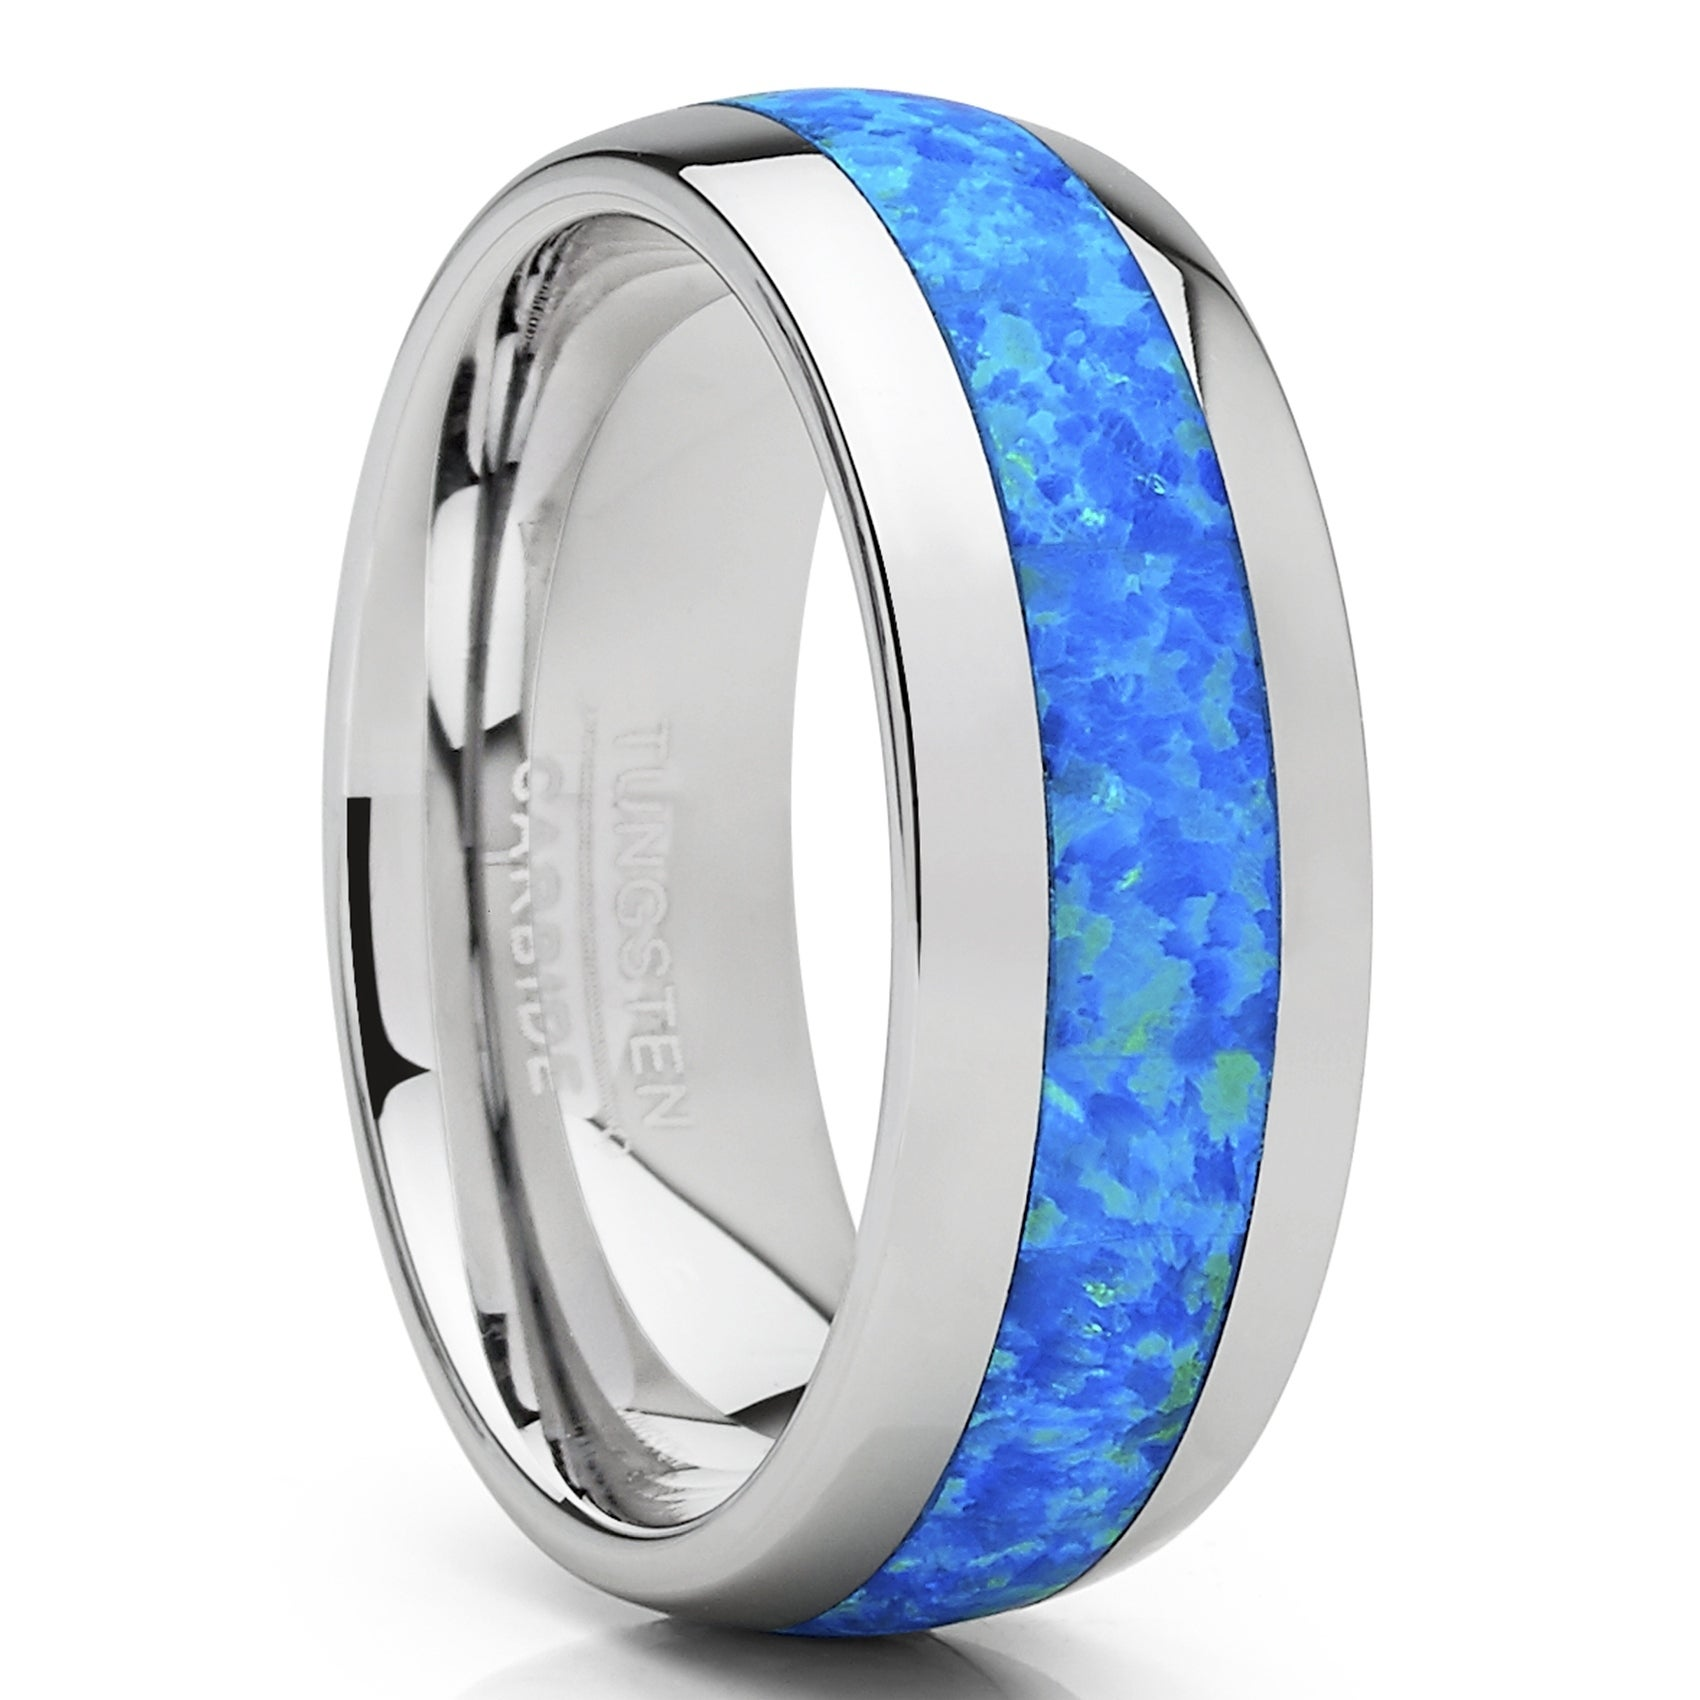 9mm Tungsten Carbide Ring Men/'s Wedding Band Simulated Diamond Brushed Size 6-13